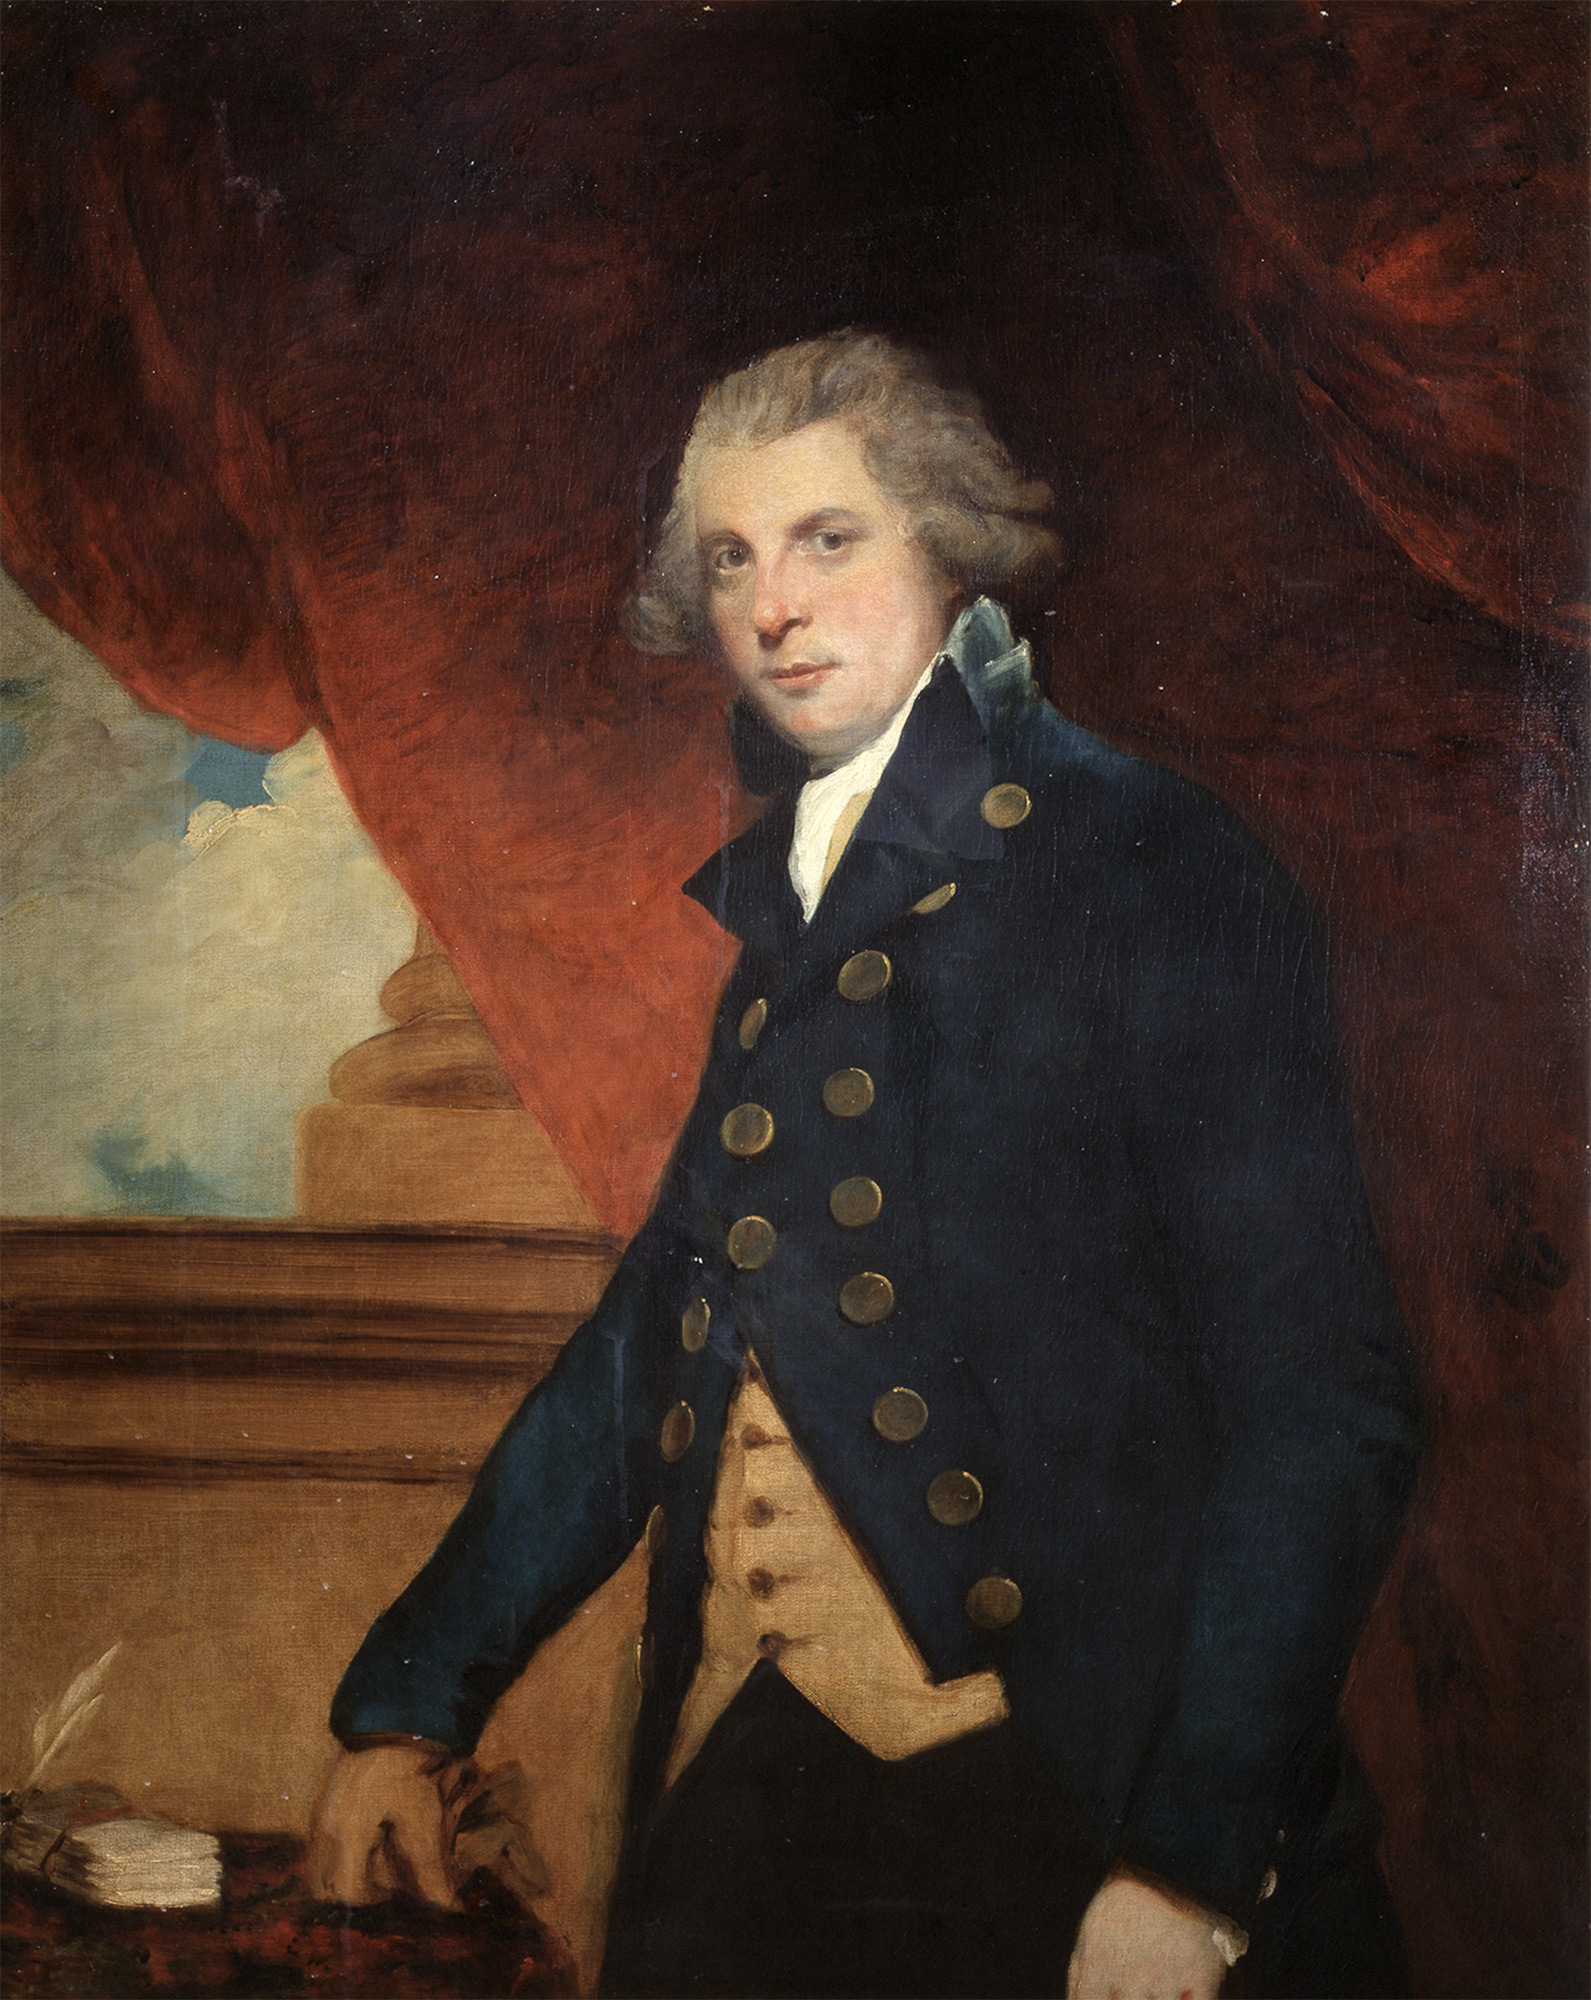 Portrait of Richard Brinsley Sheridan by Joshua Reynolds, 1788‒89